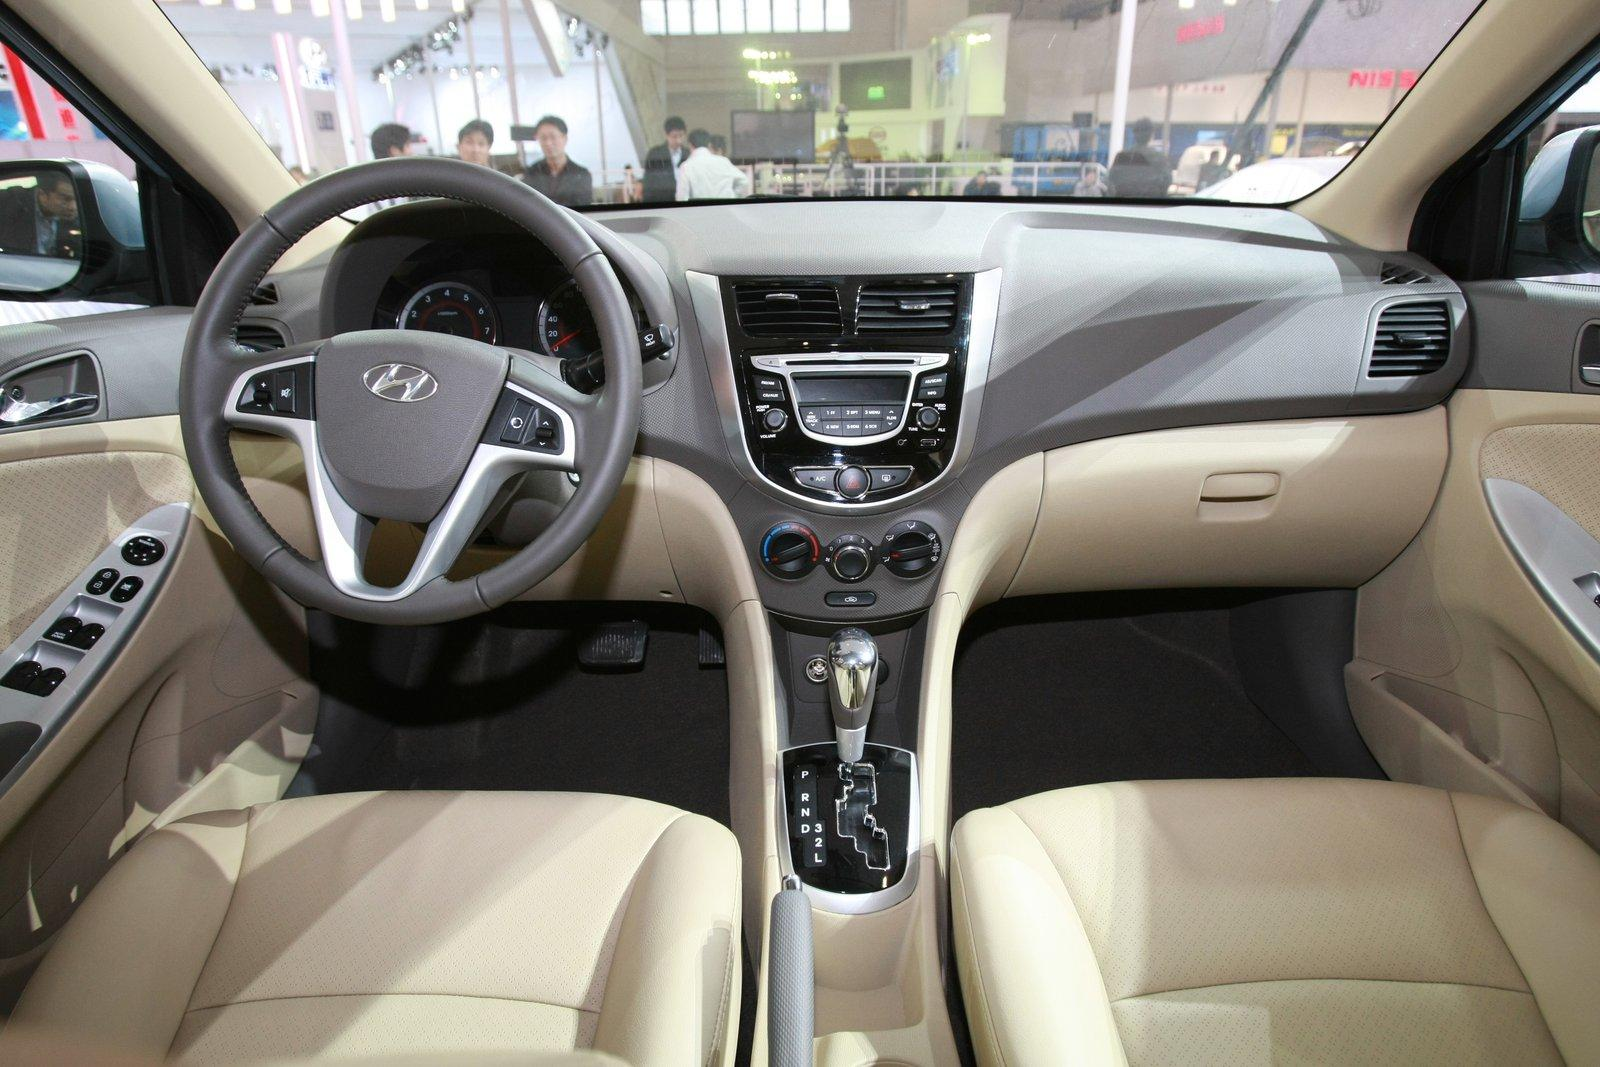 2011 Hyundai Verna Is All Set To Hit The Market